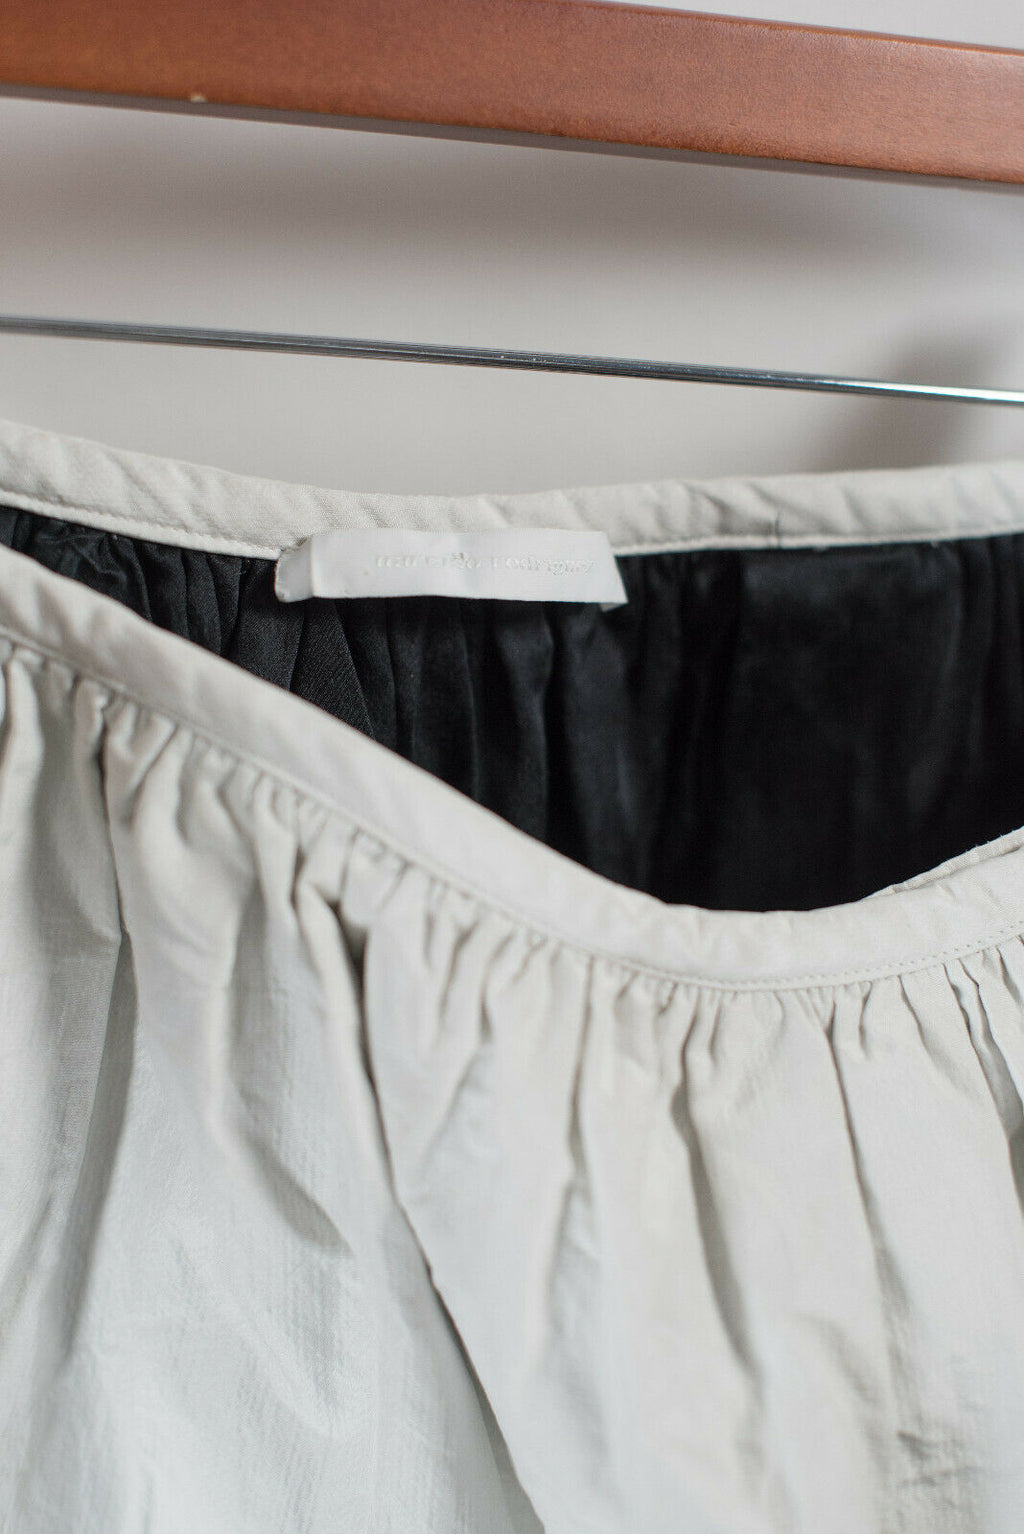 Narcisco Rodriguez Womens Size 6 Small White Skirt Italy Designer Bubble Skirt